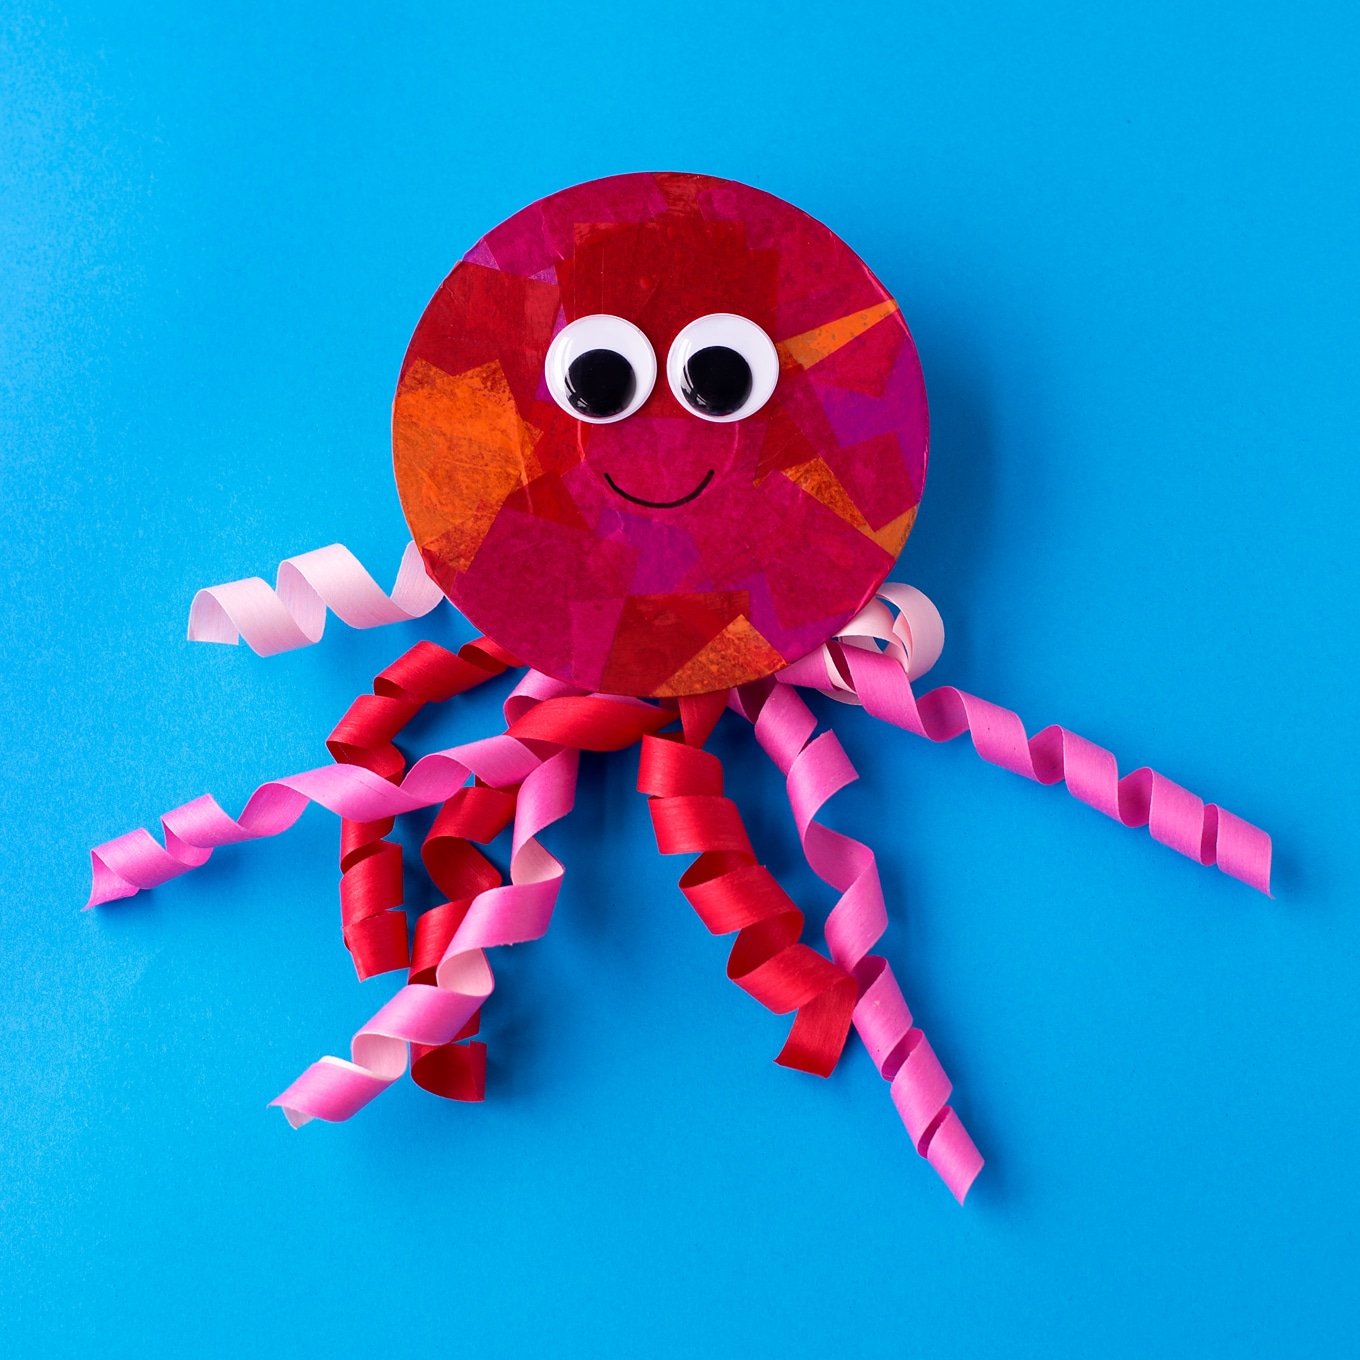 Red and Pink Tissue Paper Jellyfish Craft